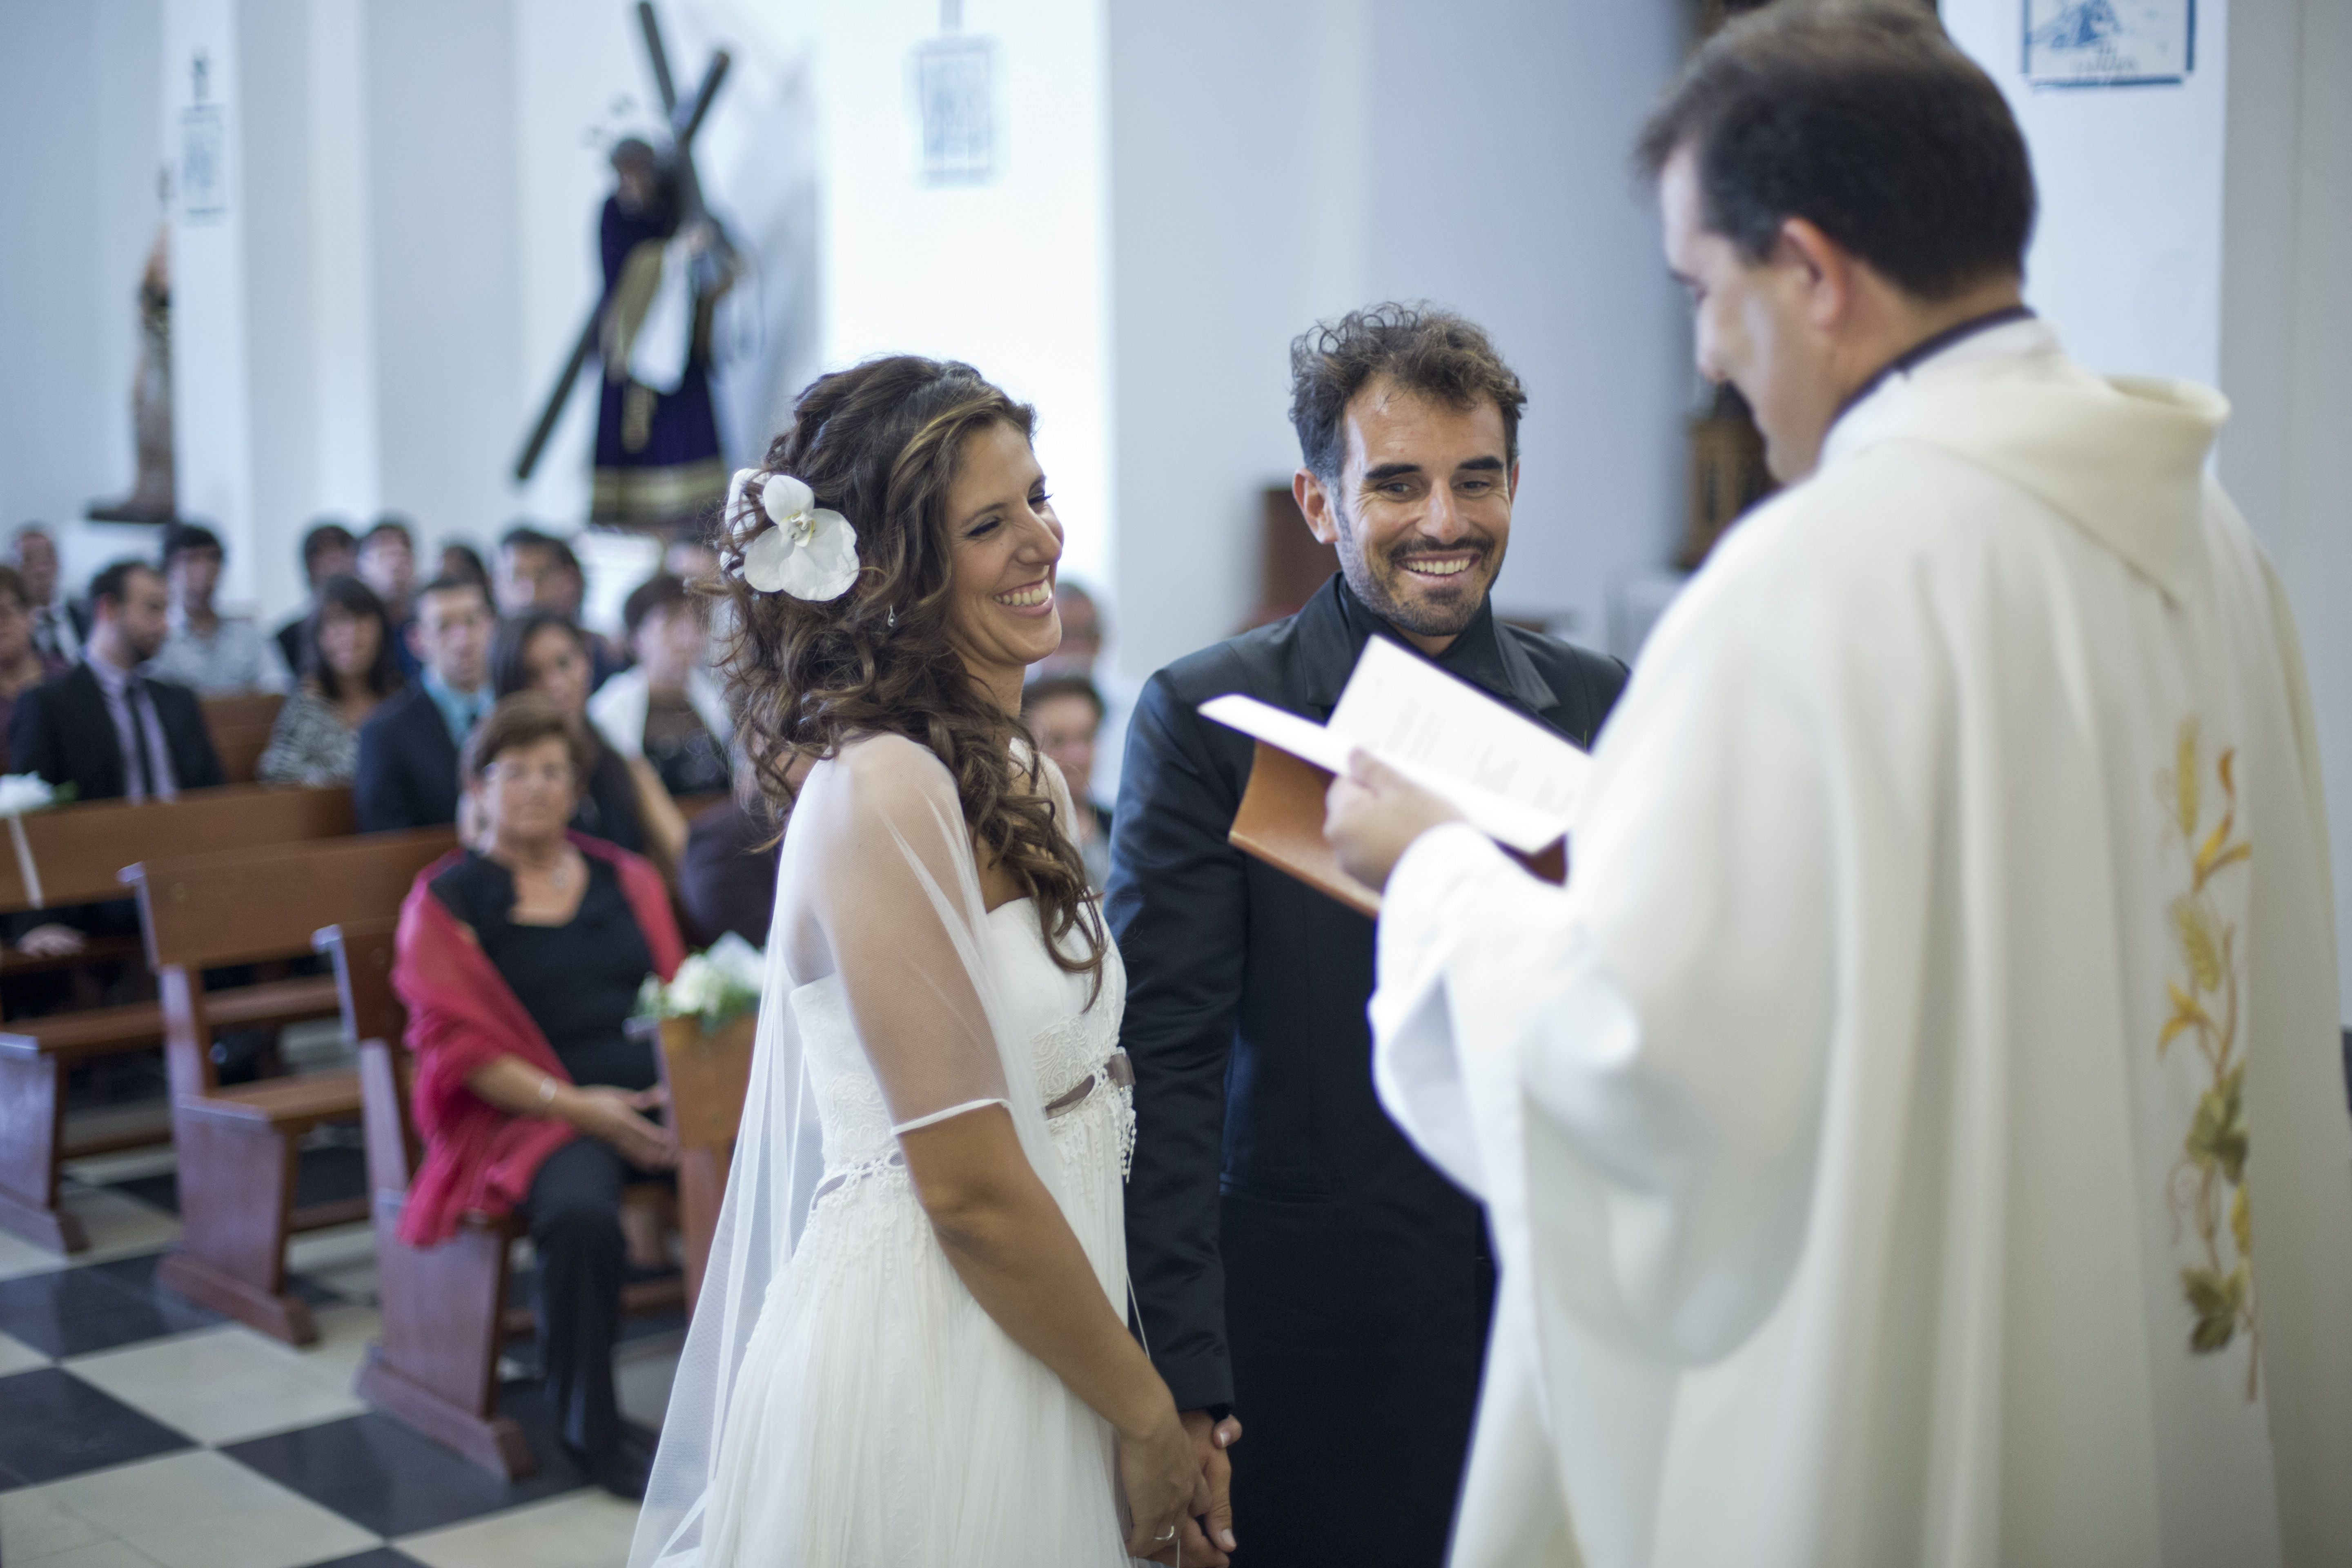 A Catholic bride and groom exchange vows.